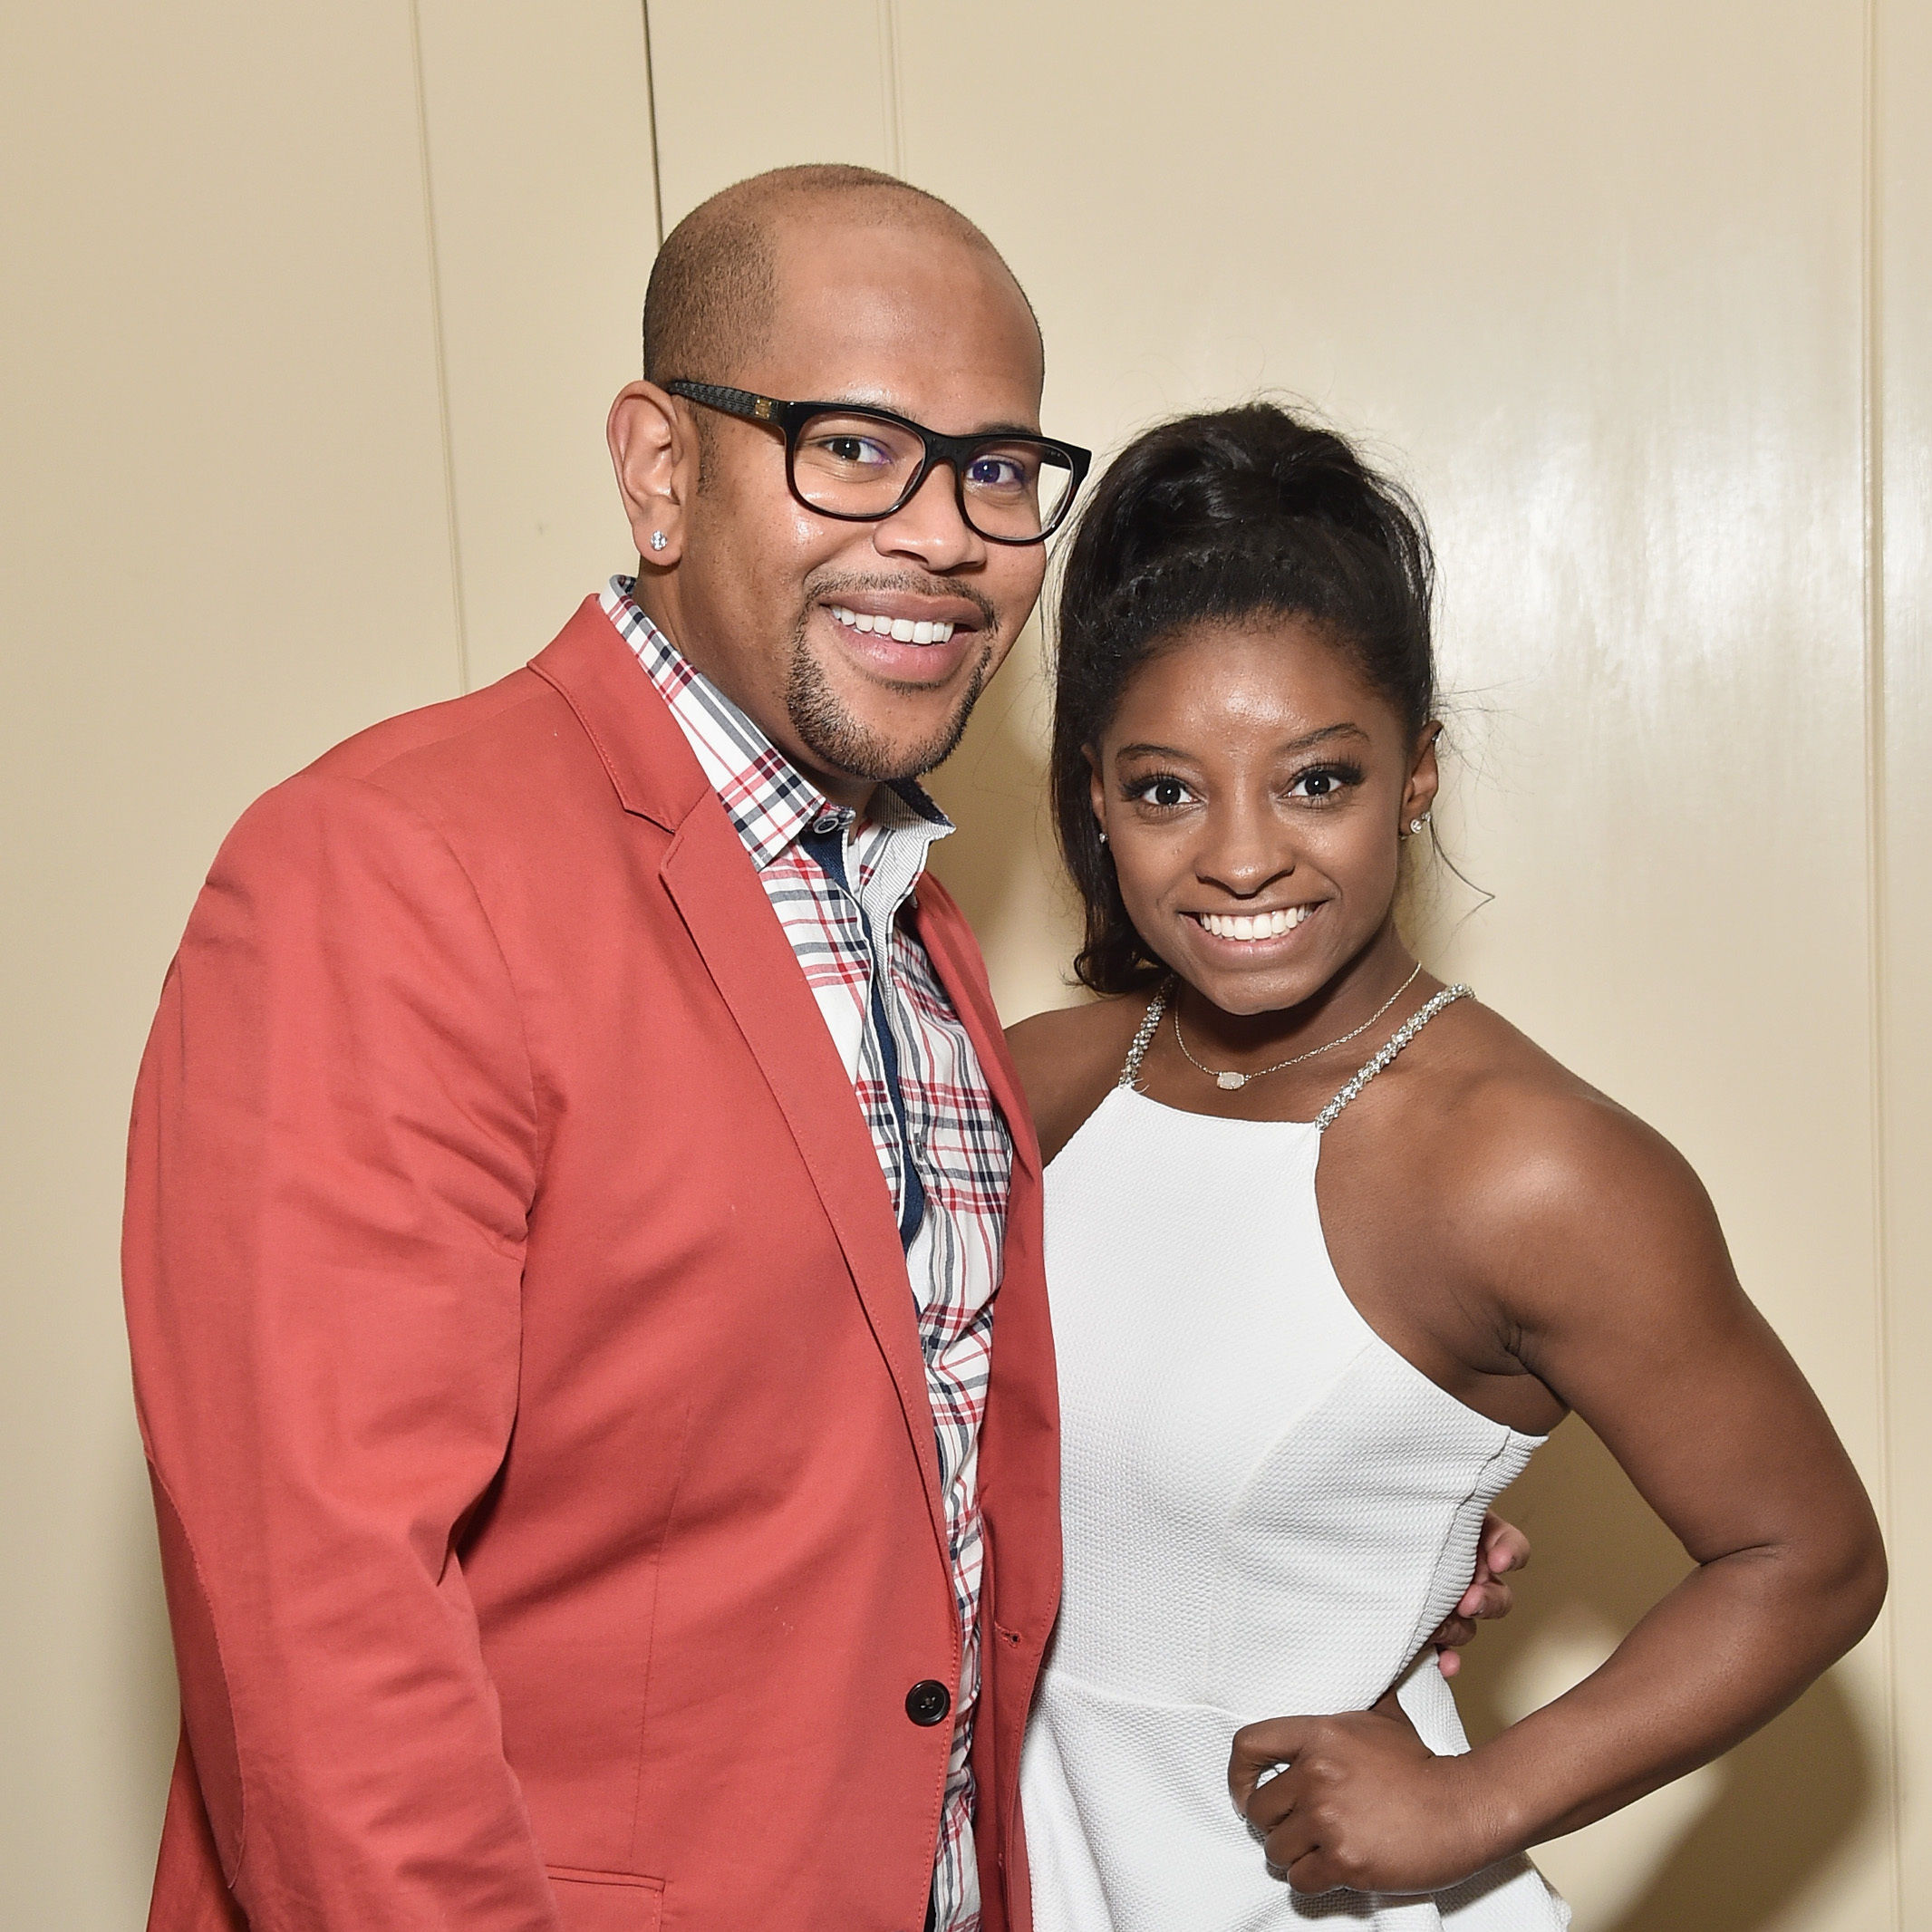 Olympic gymnast simone biles  r  and ron biles attend the  culinary kickoff at brennan s restaurant on february 2  2017 in houston  texas.  photo by mike coppolagetty images  2  ivoh2c